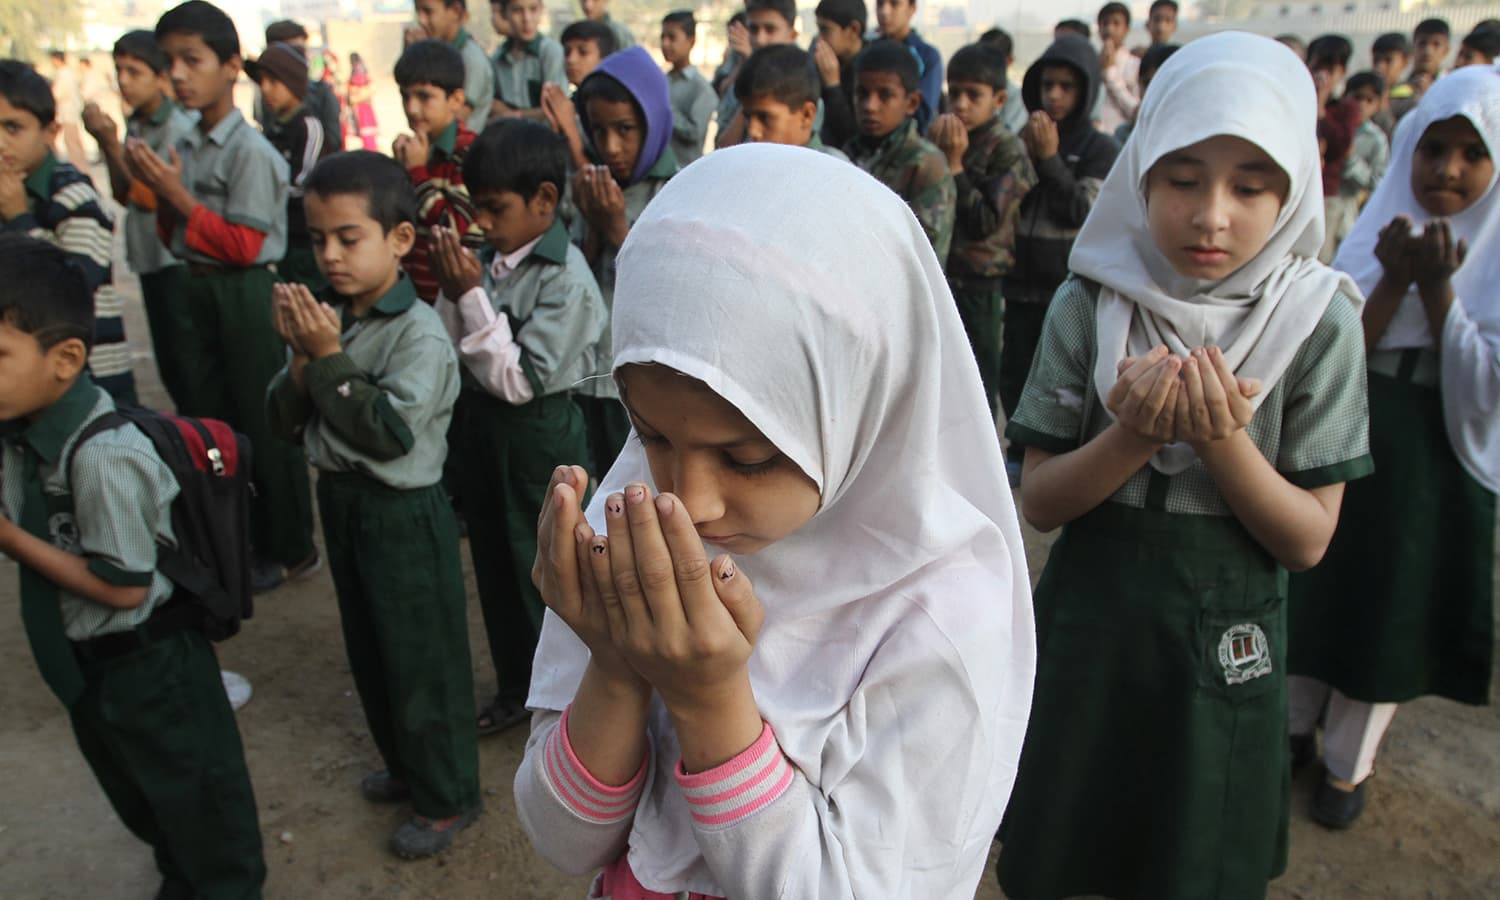 Students pray for victims of Bacha Khan University, at a school in Karachi, Pakistan, Thursday, Jan. 21, 2016. — AP